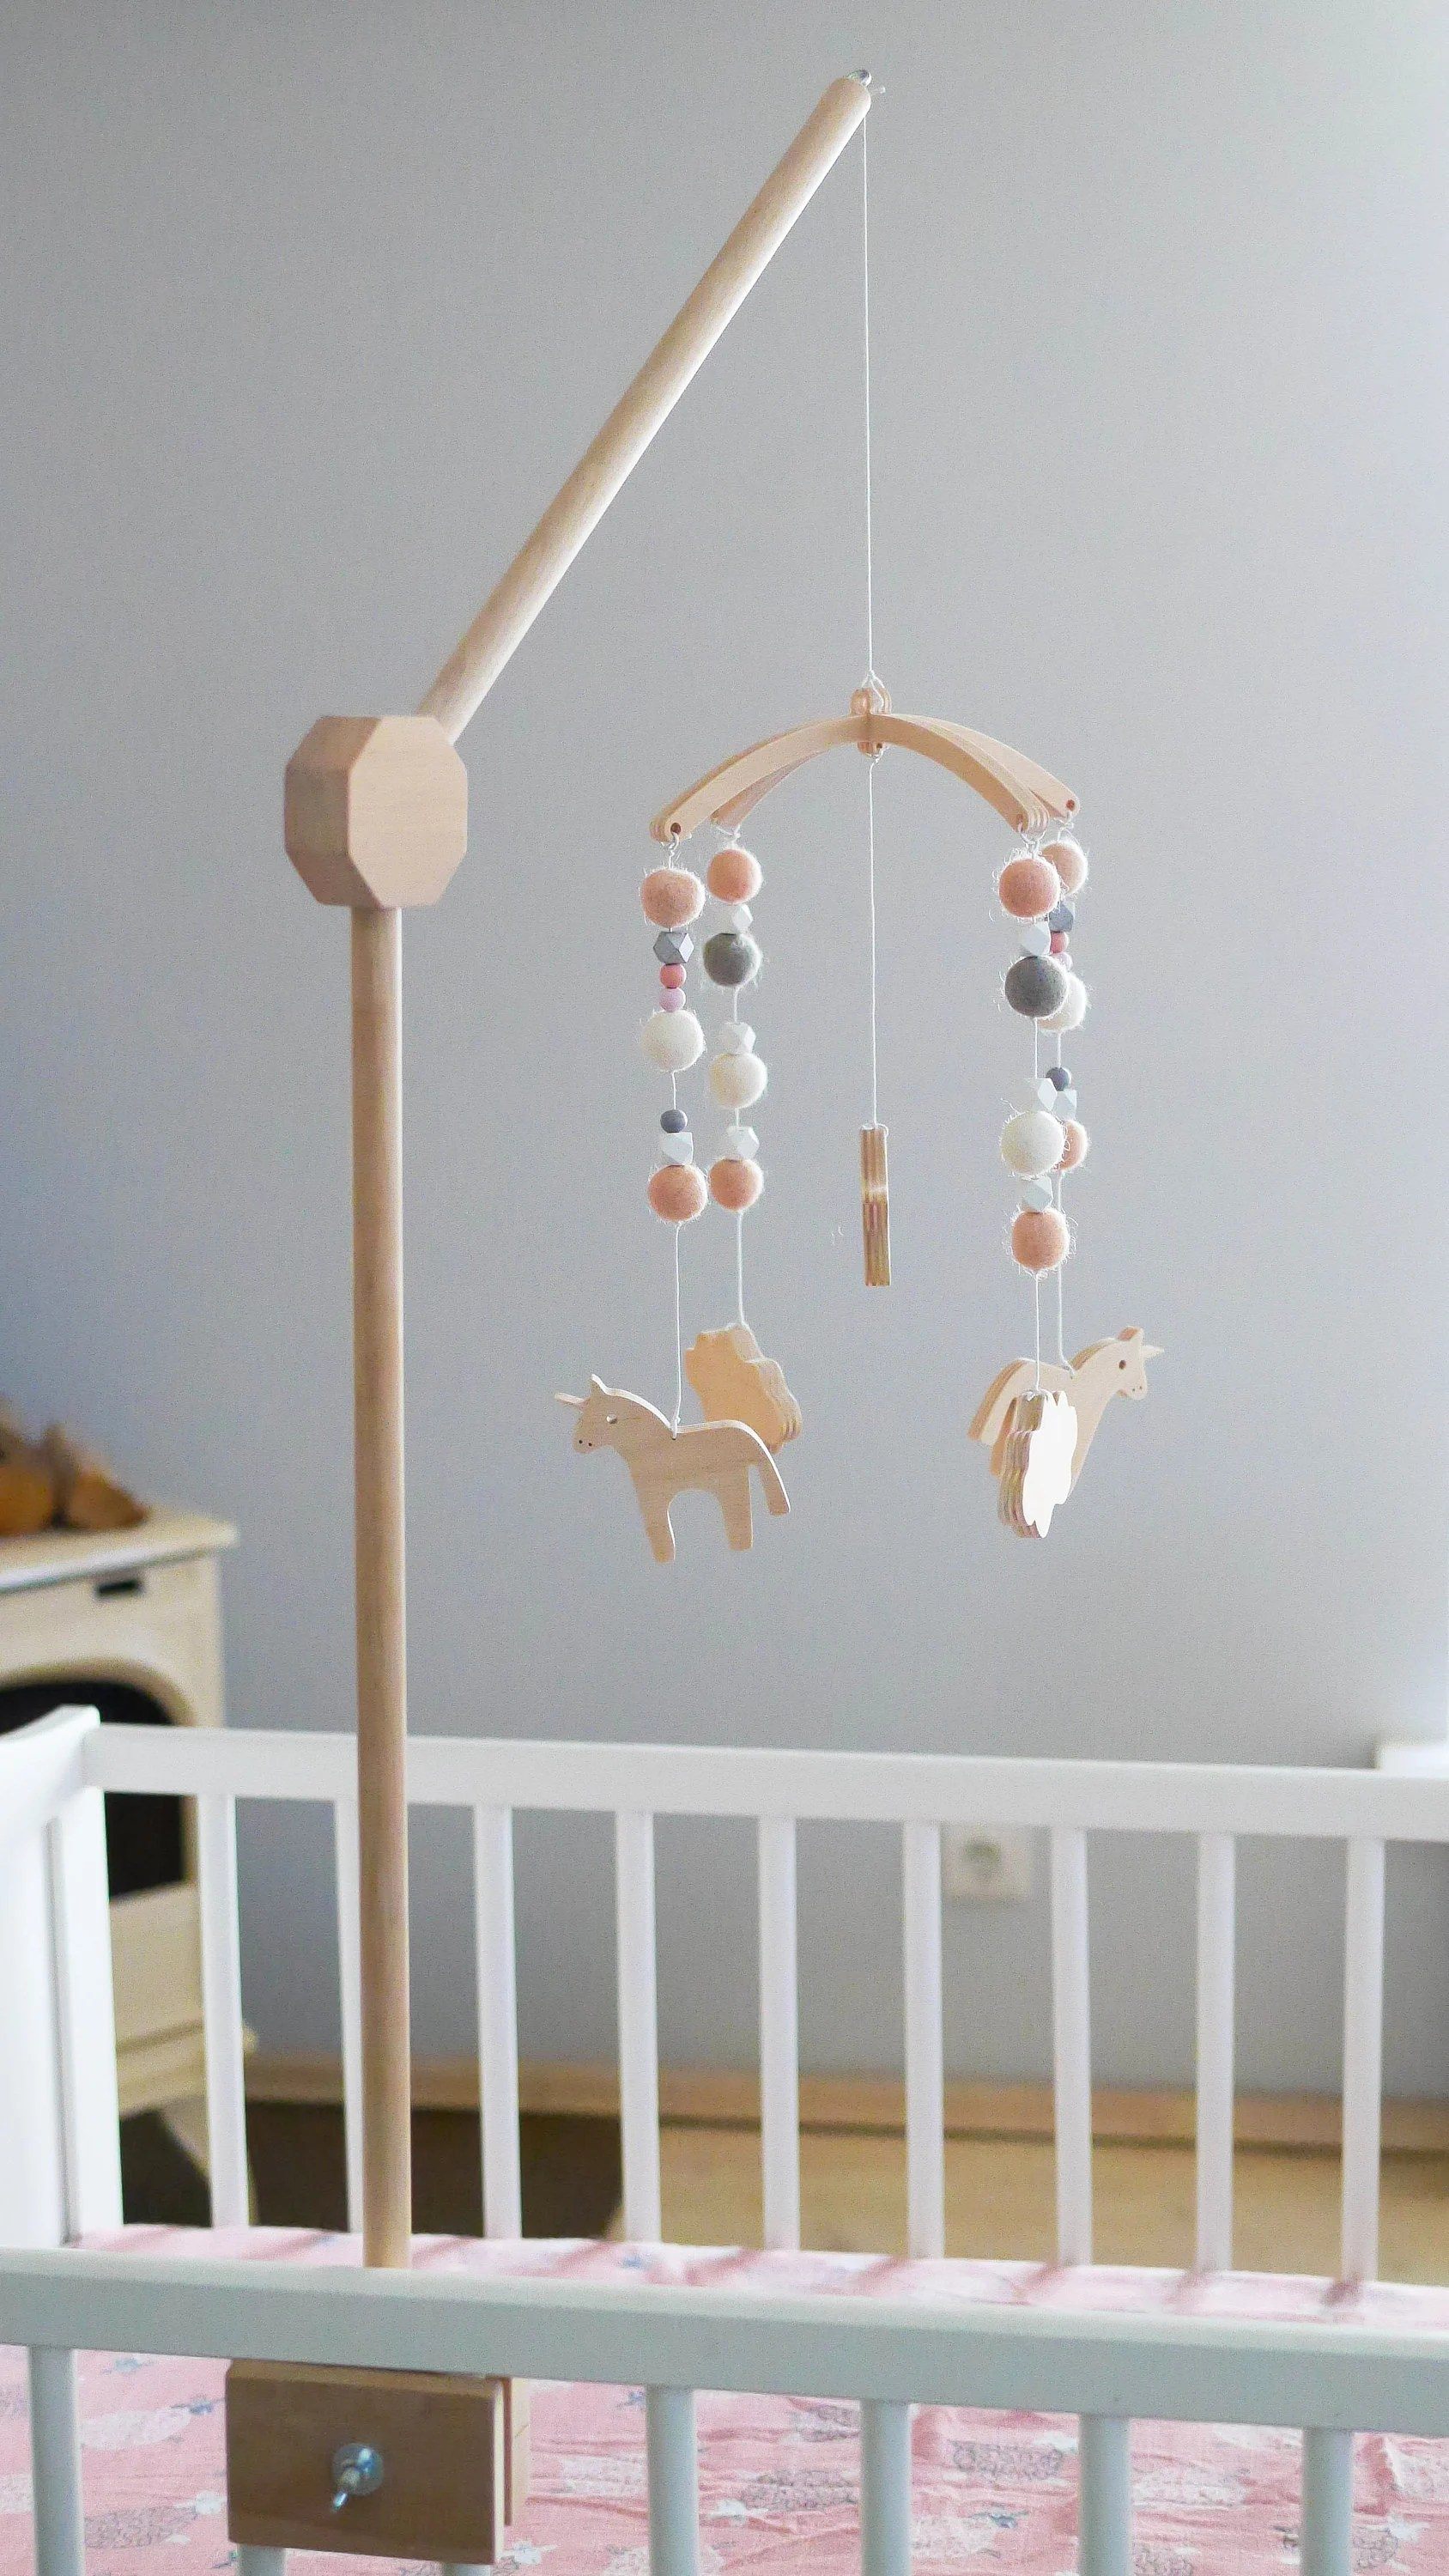 Wooden Baby Mobile Cot Mobile Hanger Baby Mobile Hanger Crib Wooden Mobile Arm Baby Mobile Crib Attachment Mobile Hanger Wooden Stand